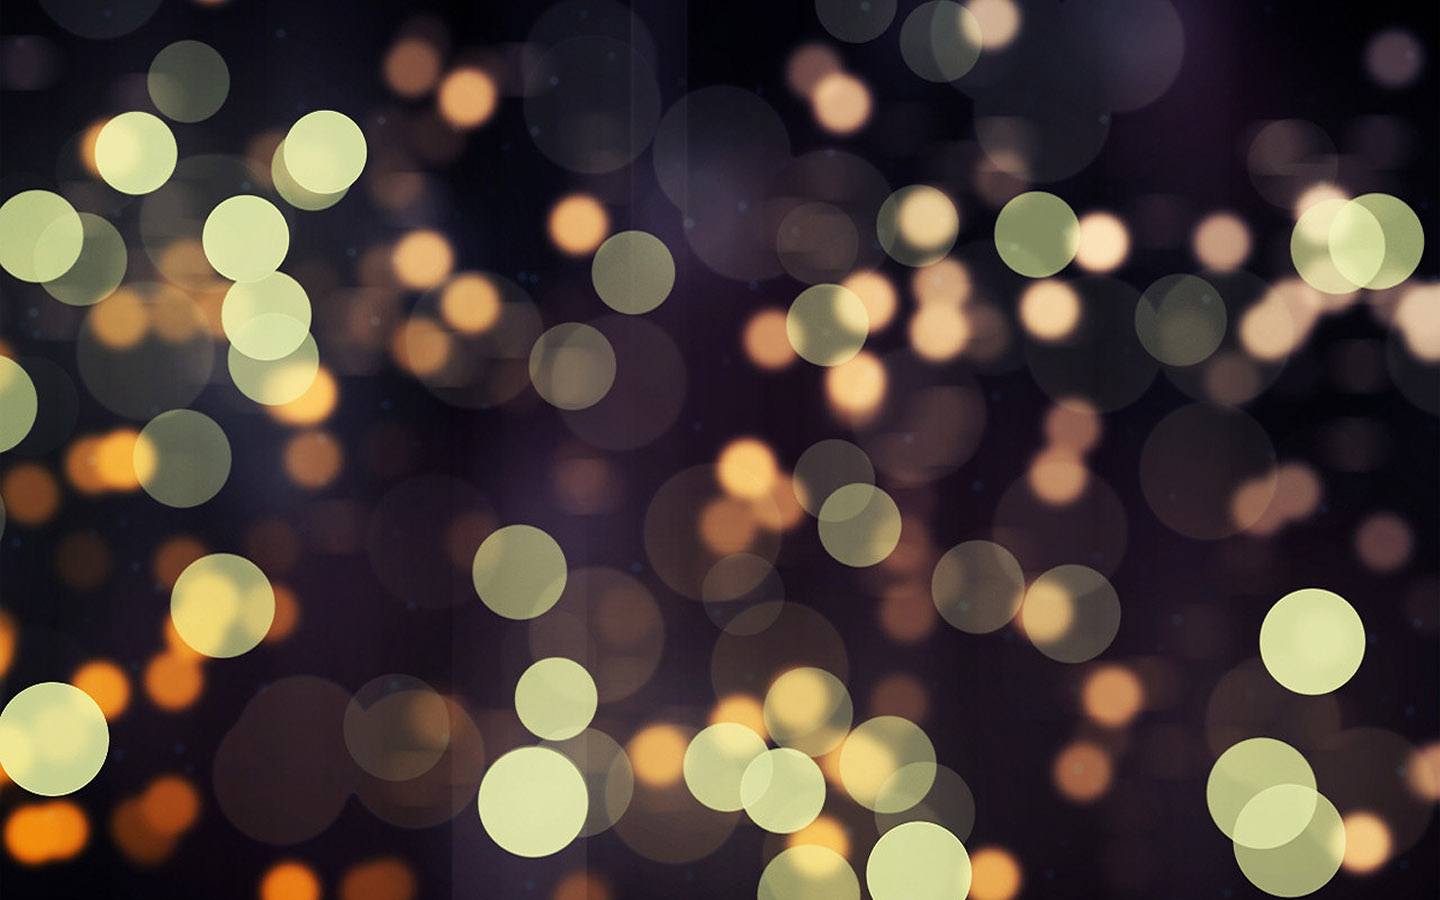 Bokeh Wallpaper